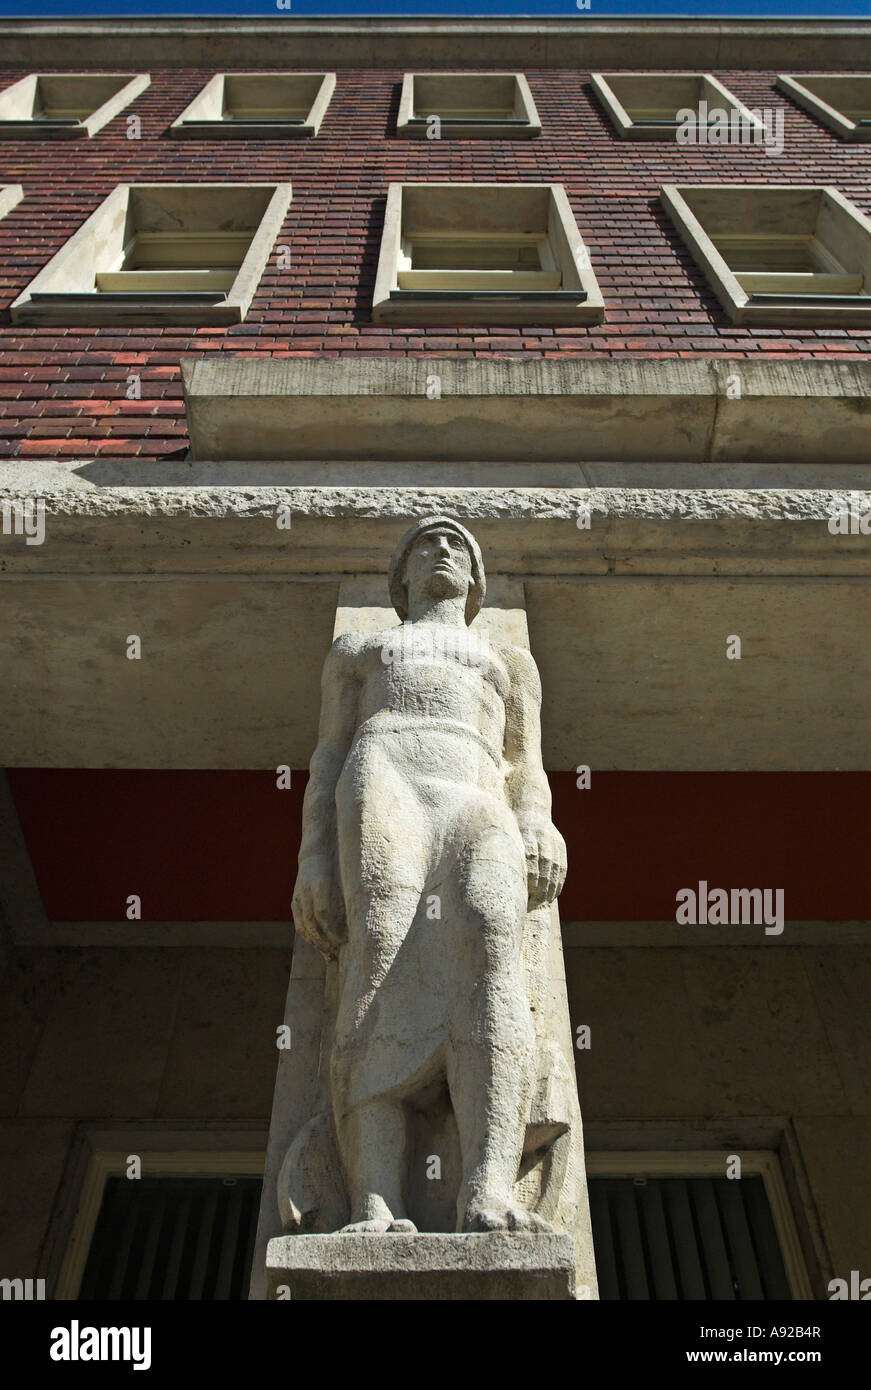 Sculpture at the house of the unions, Hanseatic city of Stralsund, Mecklenburg Western Pomerania, Germany, Europa - Stock Image